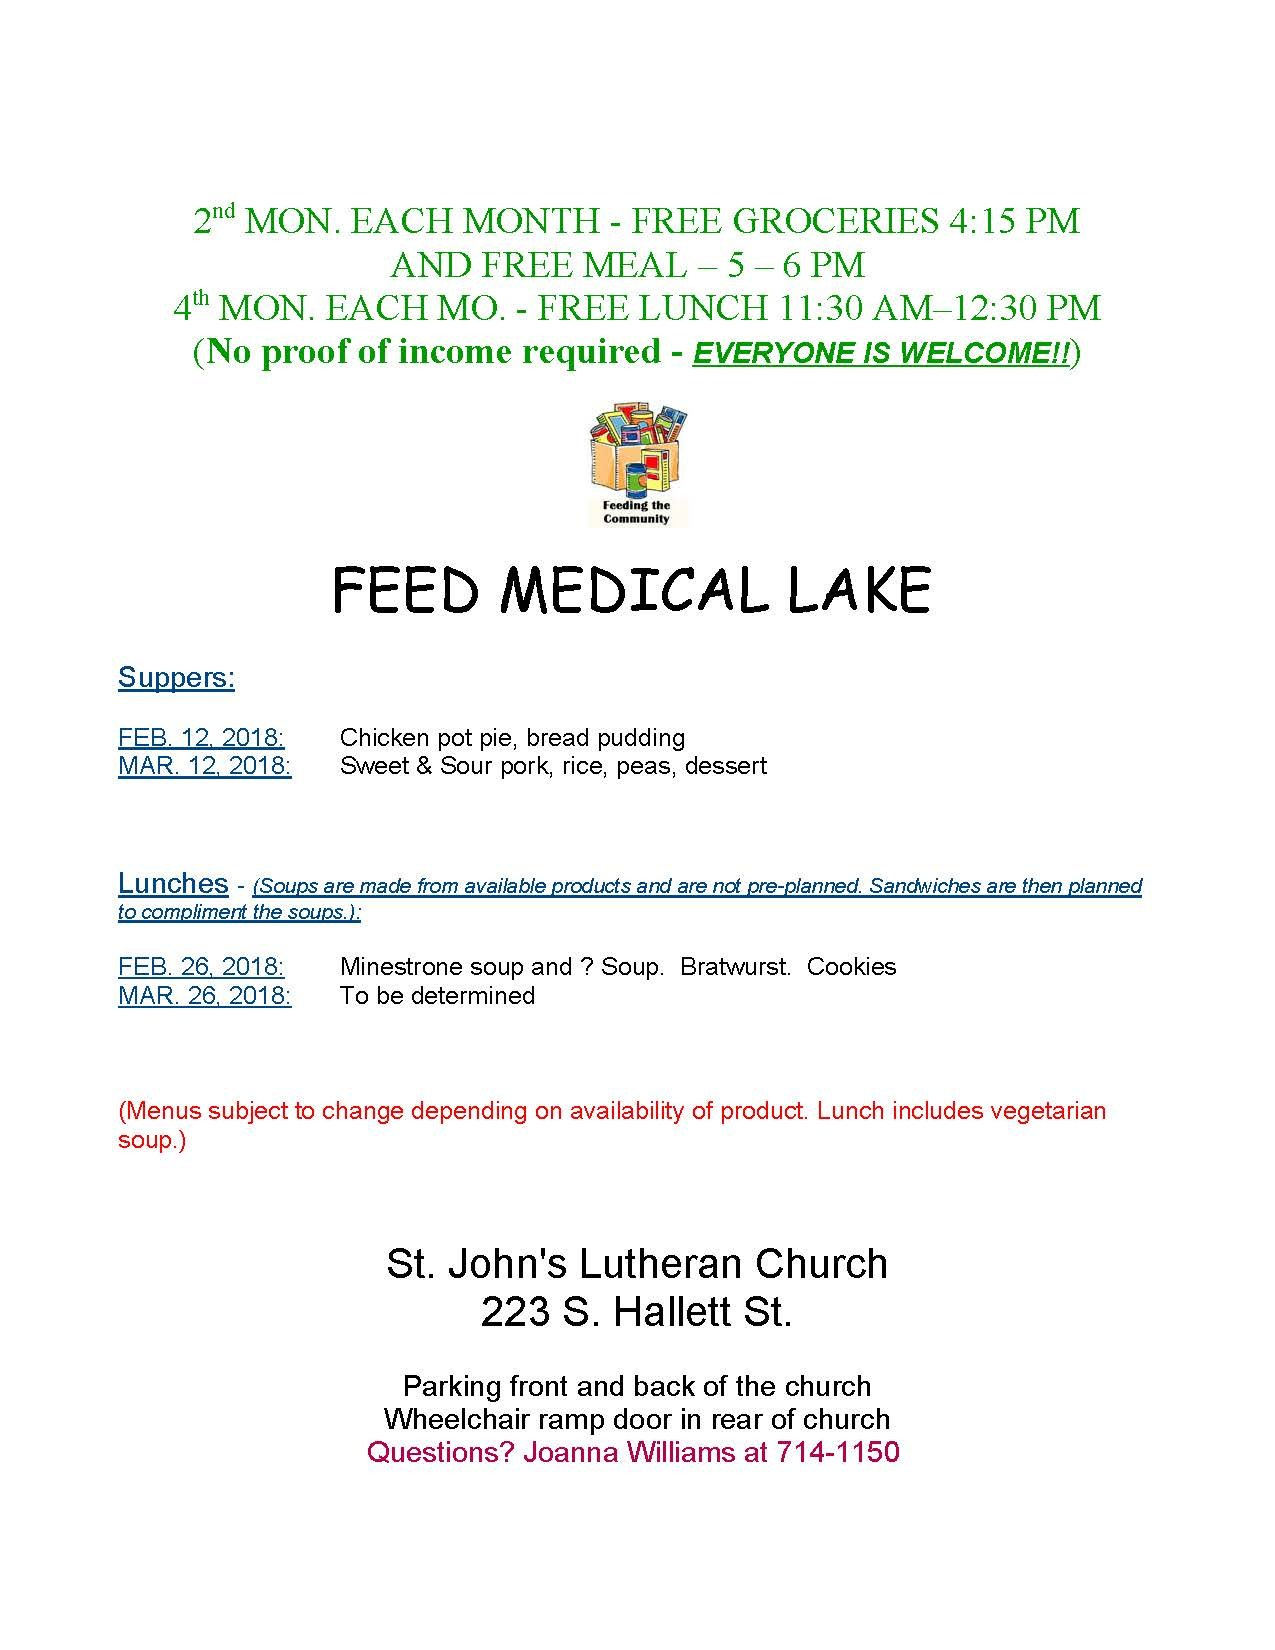 Feed Medical Lake Flyer February and March